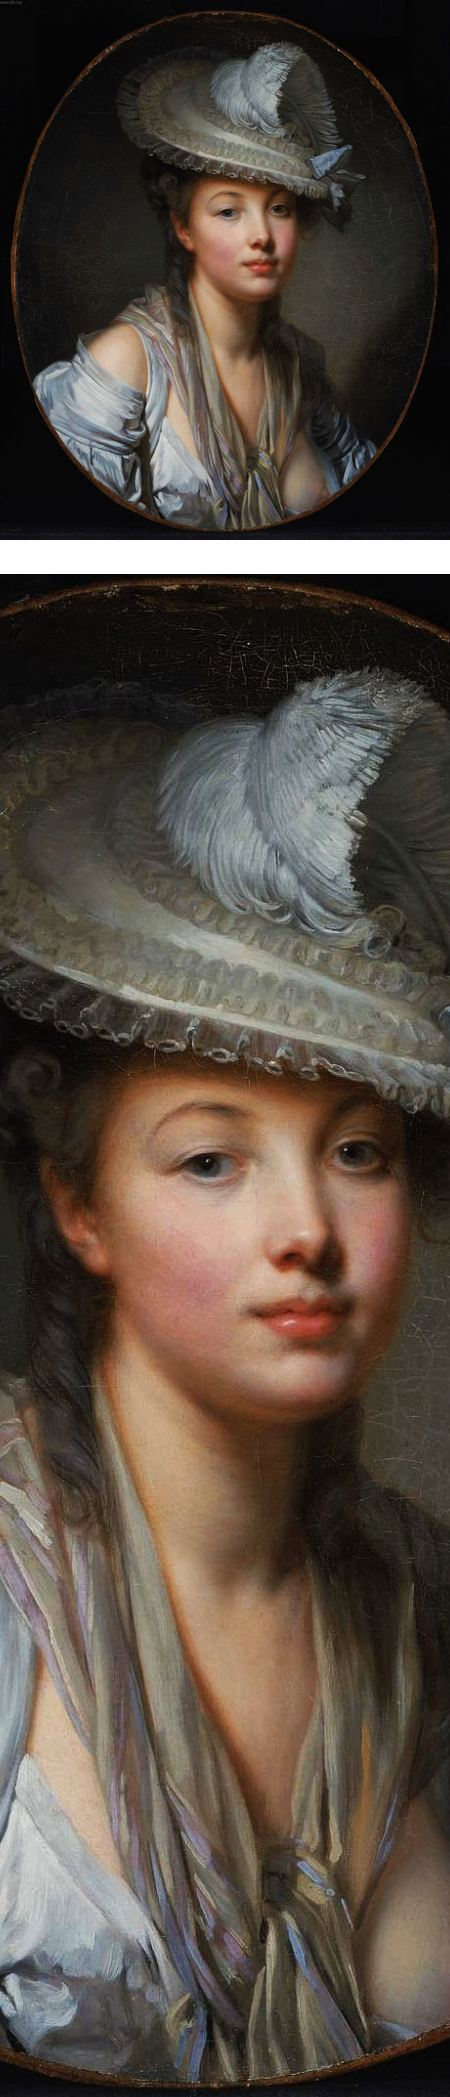 The White Hat, Jean-Baptiste Greuze